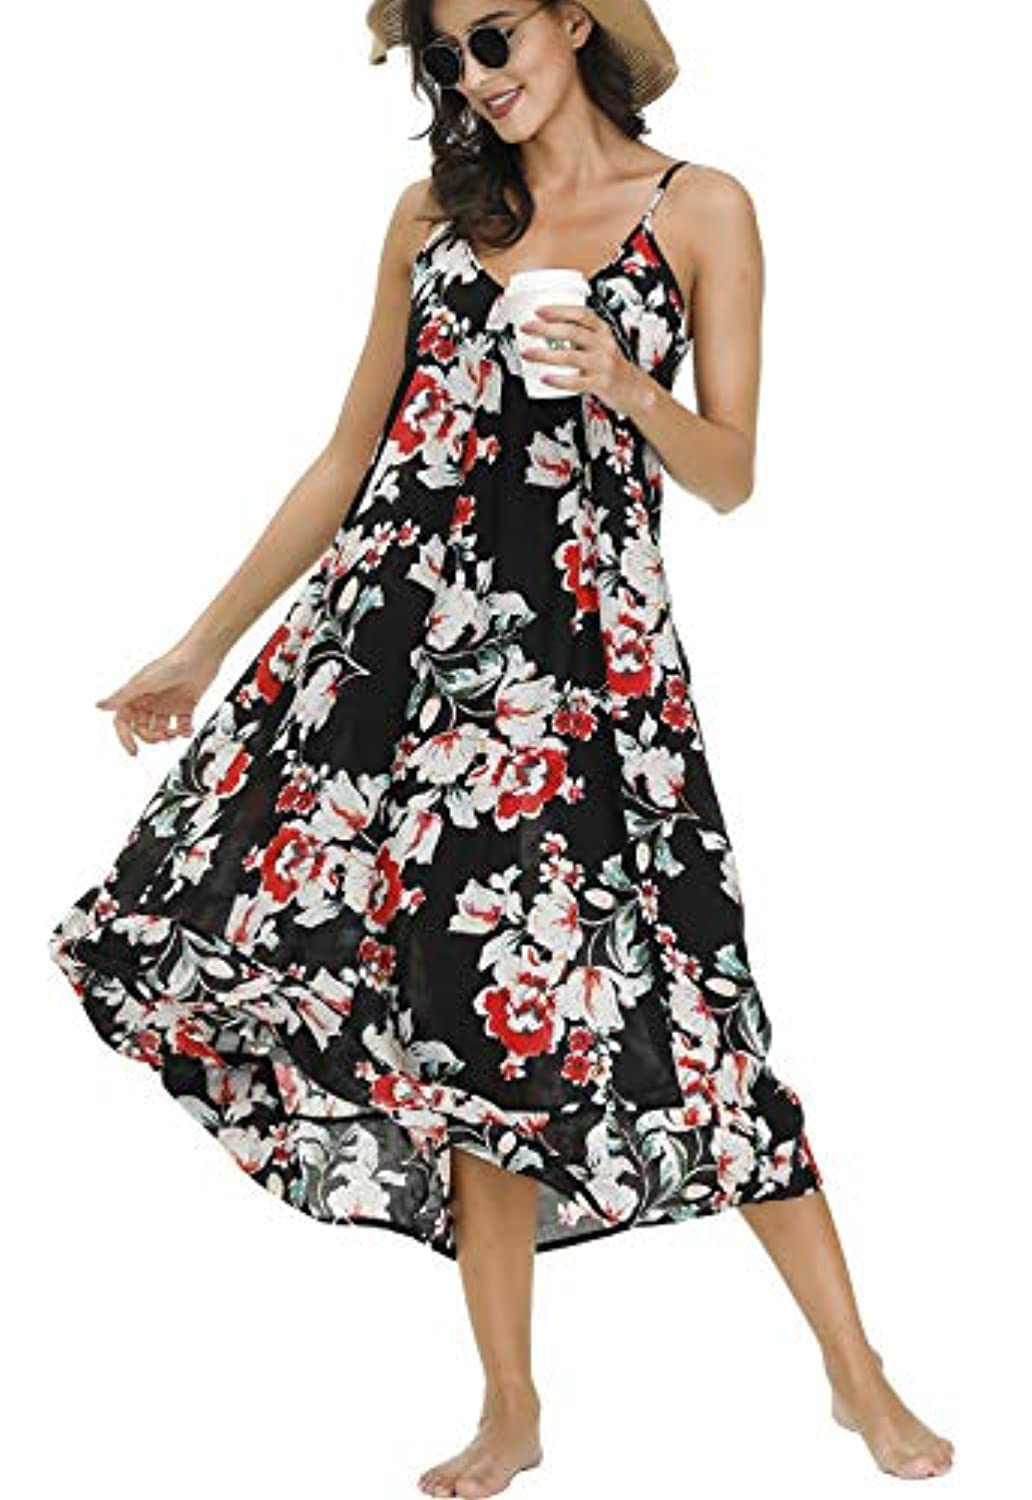 Classier: Buy BUENOS NINOS BUENOS NINOS Women's V Neck Floral Maxi Dress Boho Printed Adjustable Spaghetti Strap Ethnic Beach Long Dress with Pockets